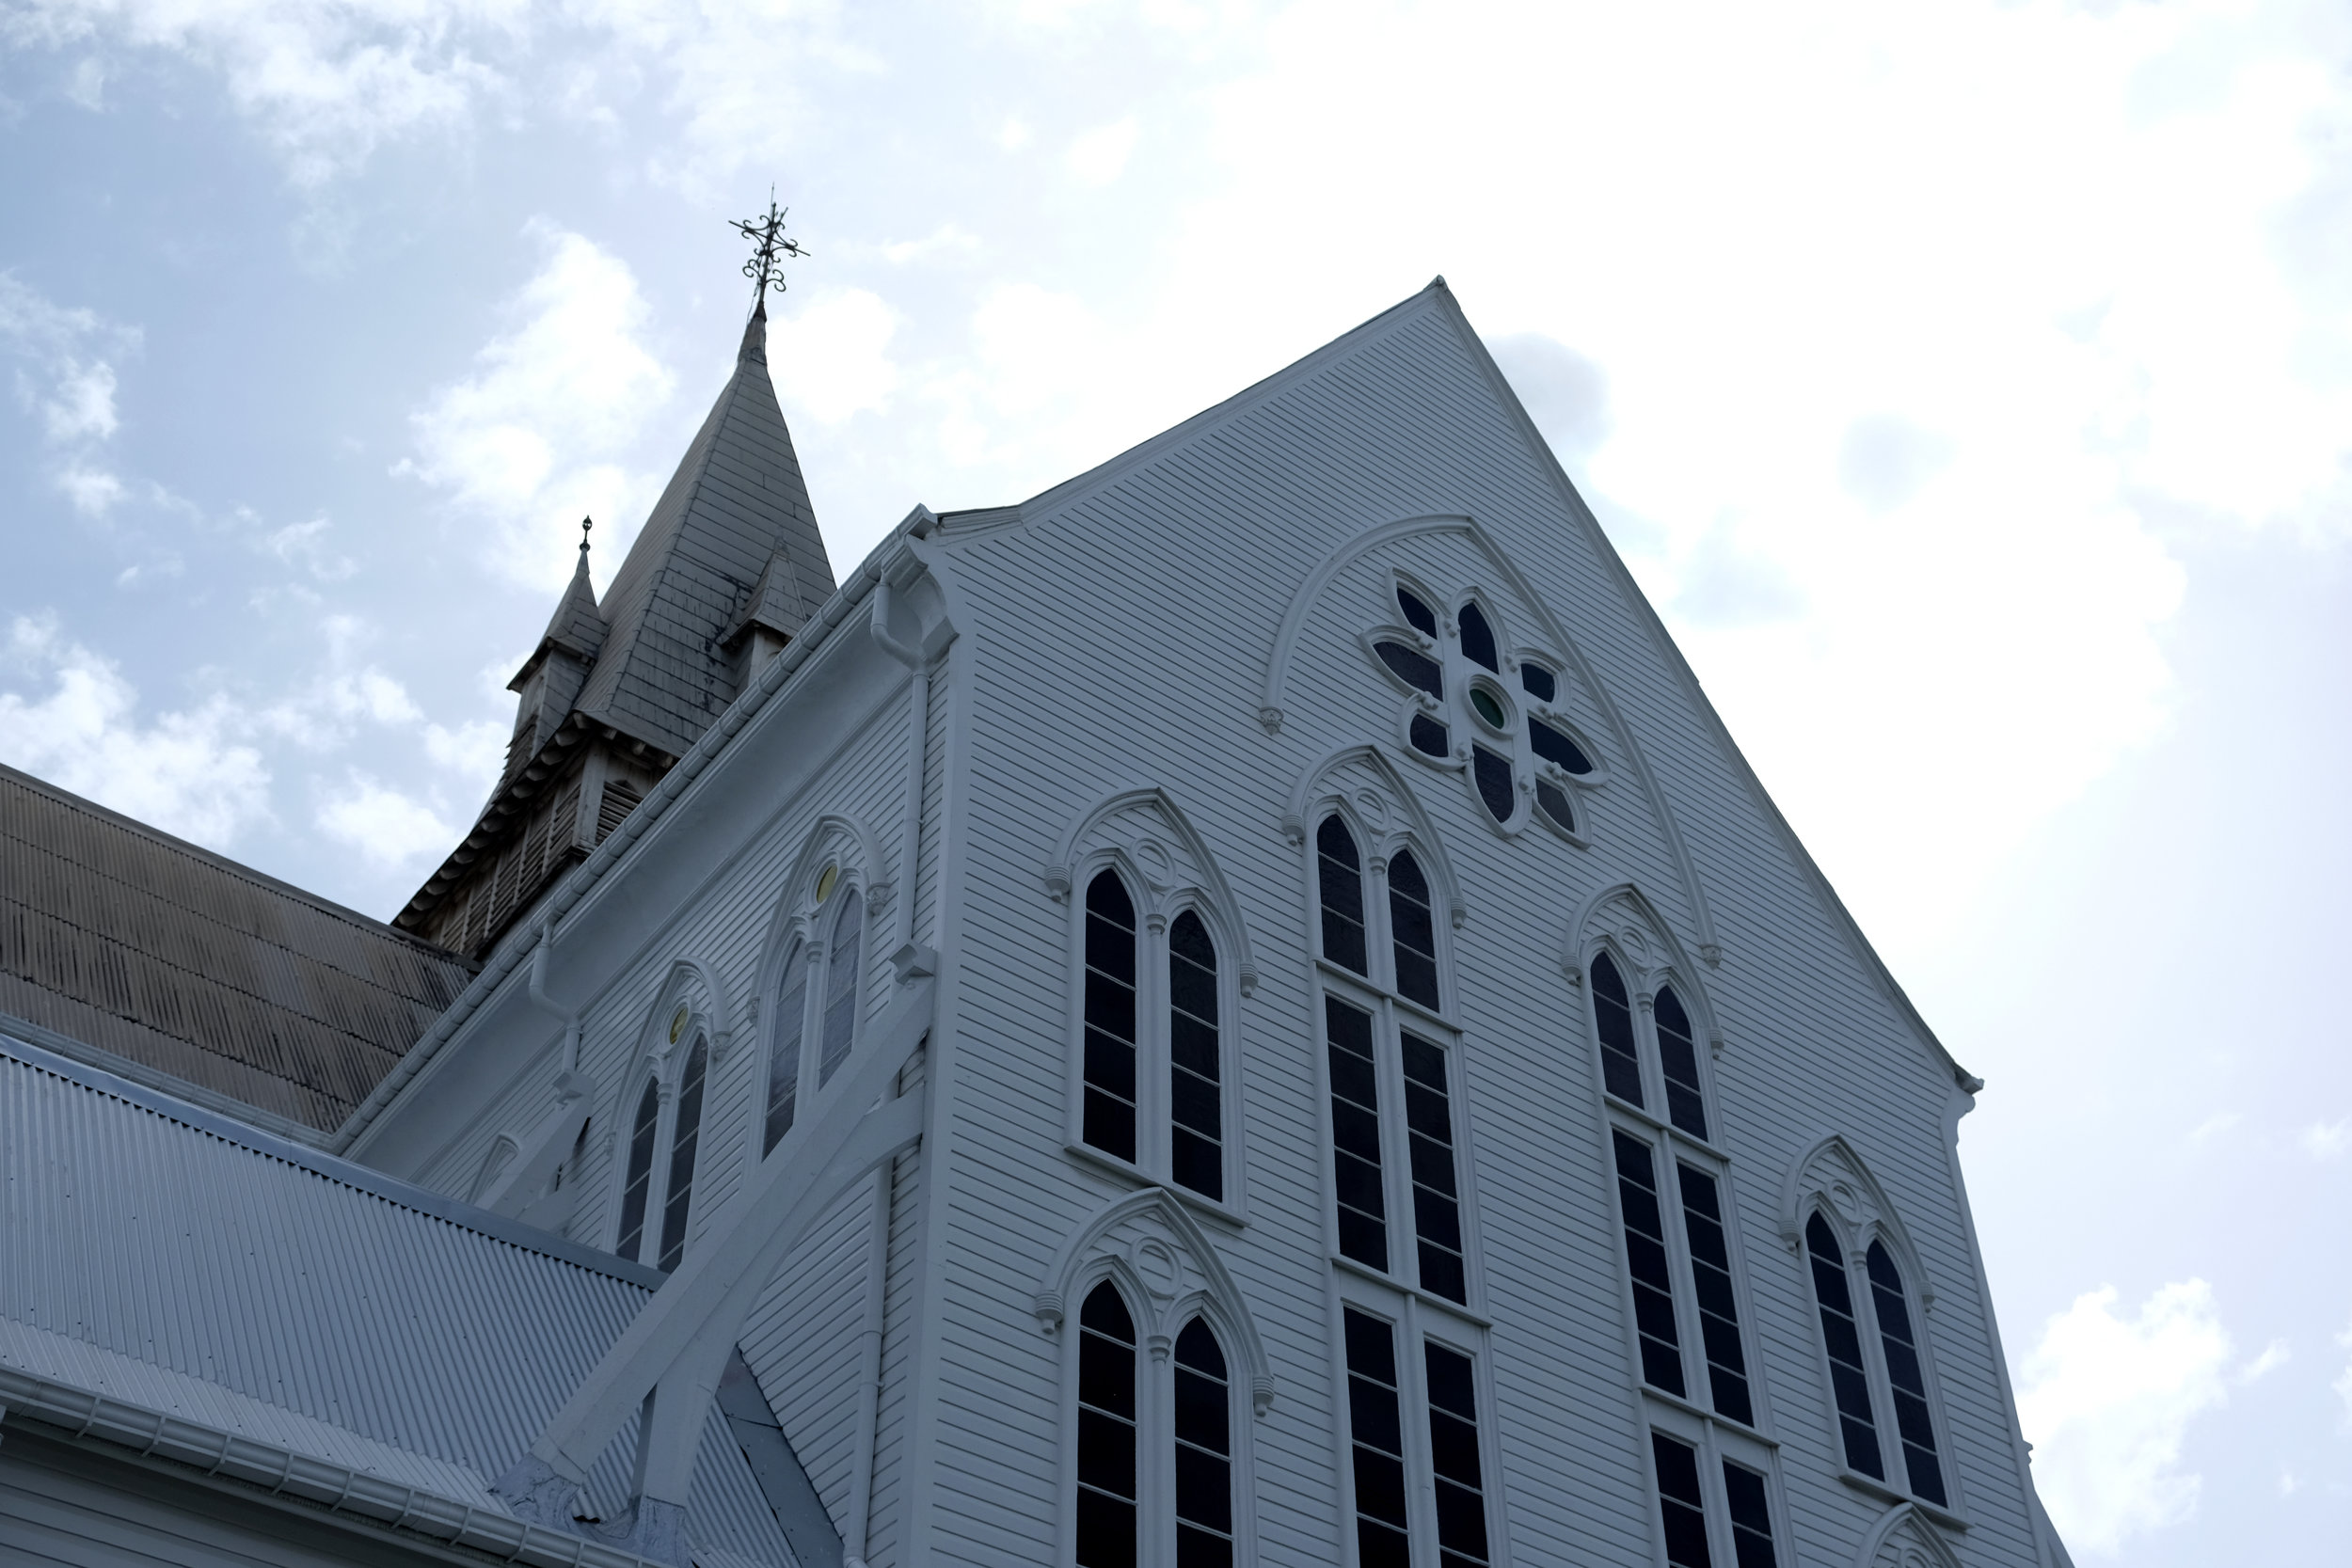 ST. GEORGE'S CATHEDRAL, GEORGETOWN